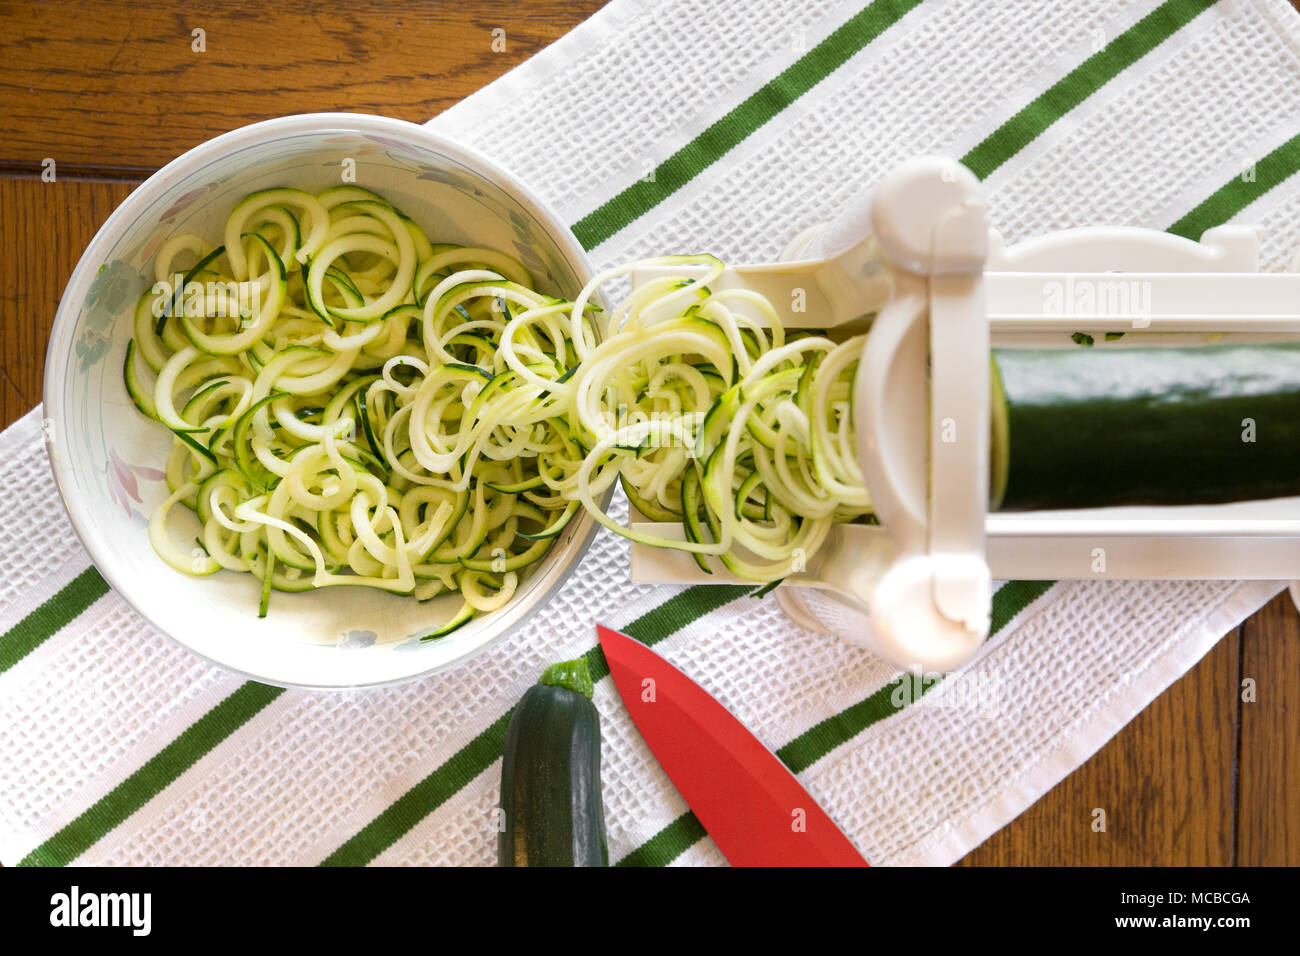 Spiral zucchini noodles called zoodles prepared in spiralizer kitchen gadget - Stock Image